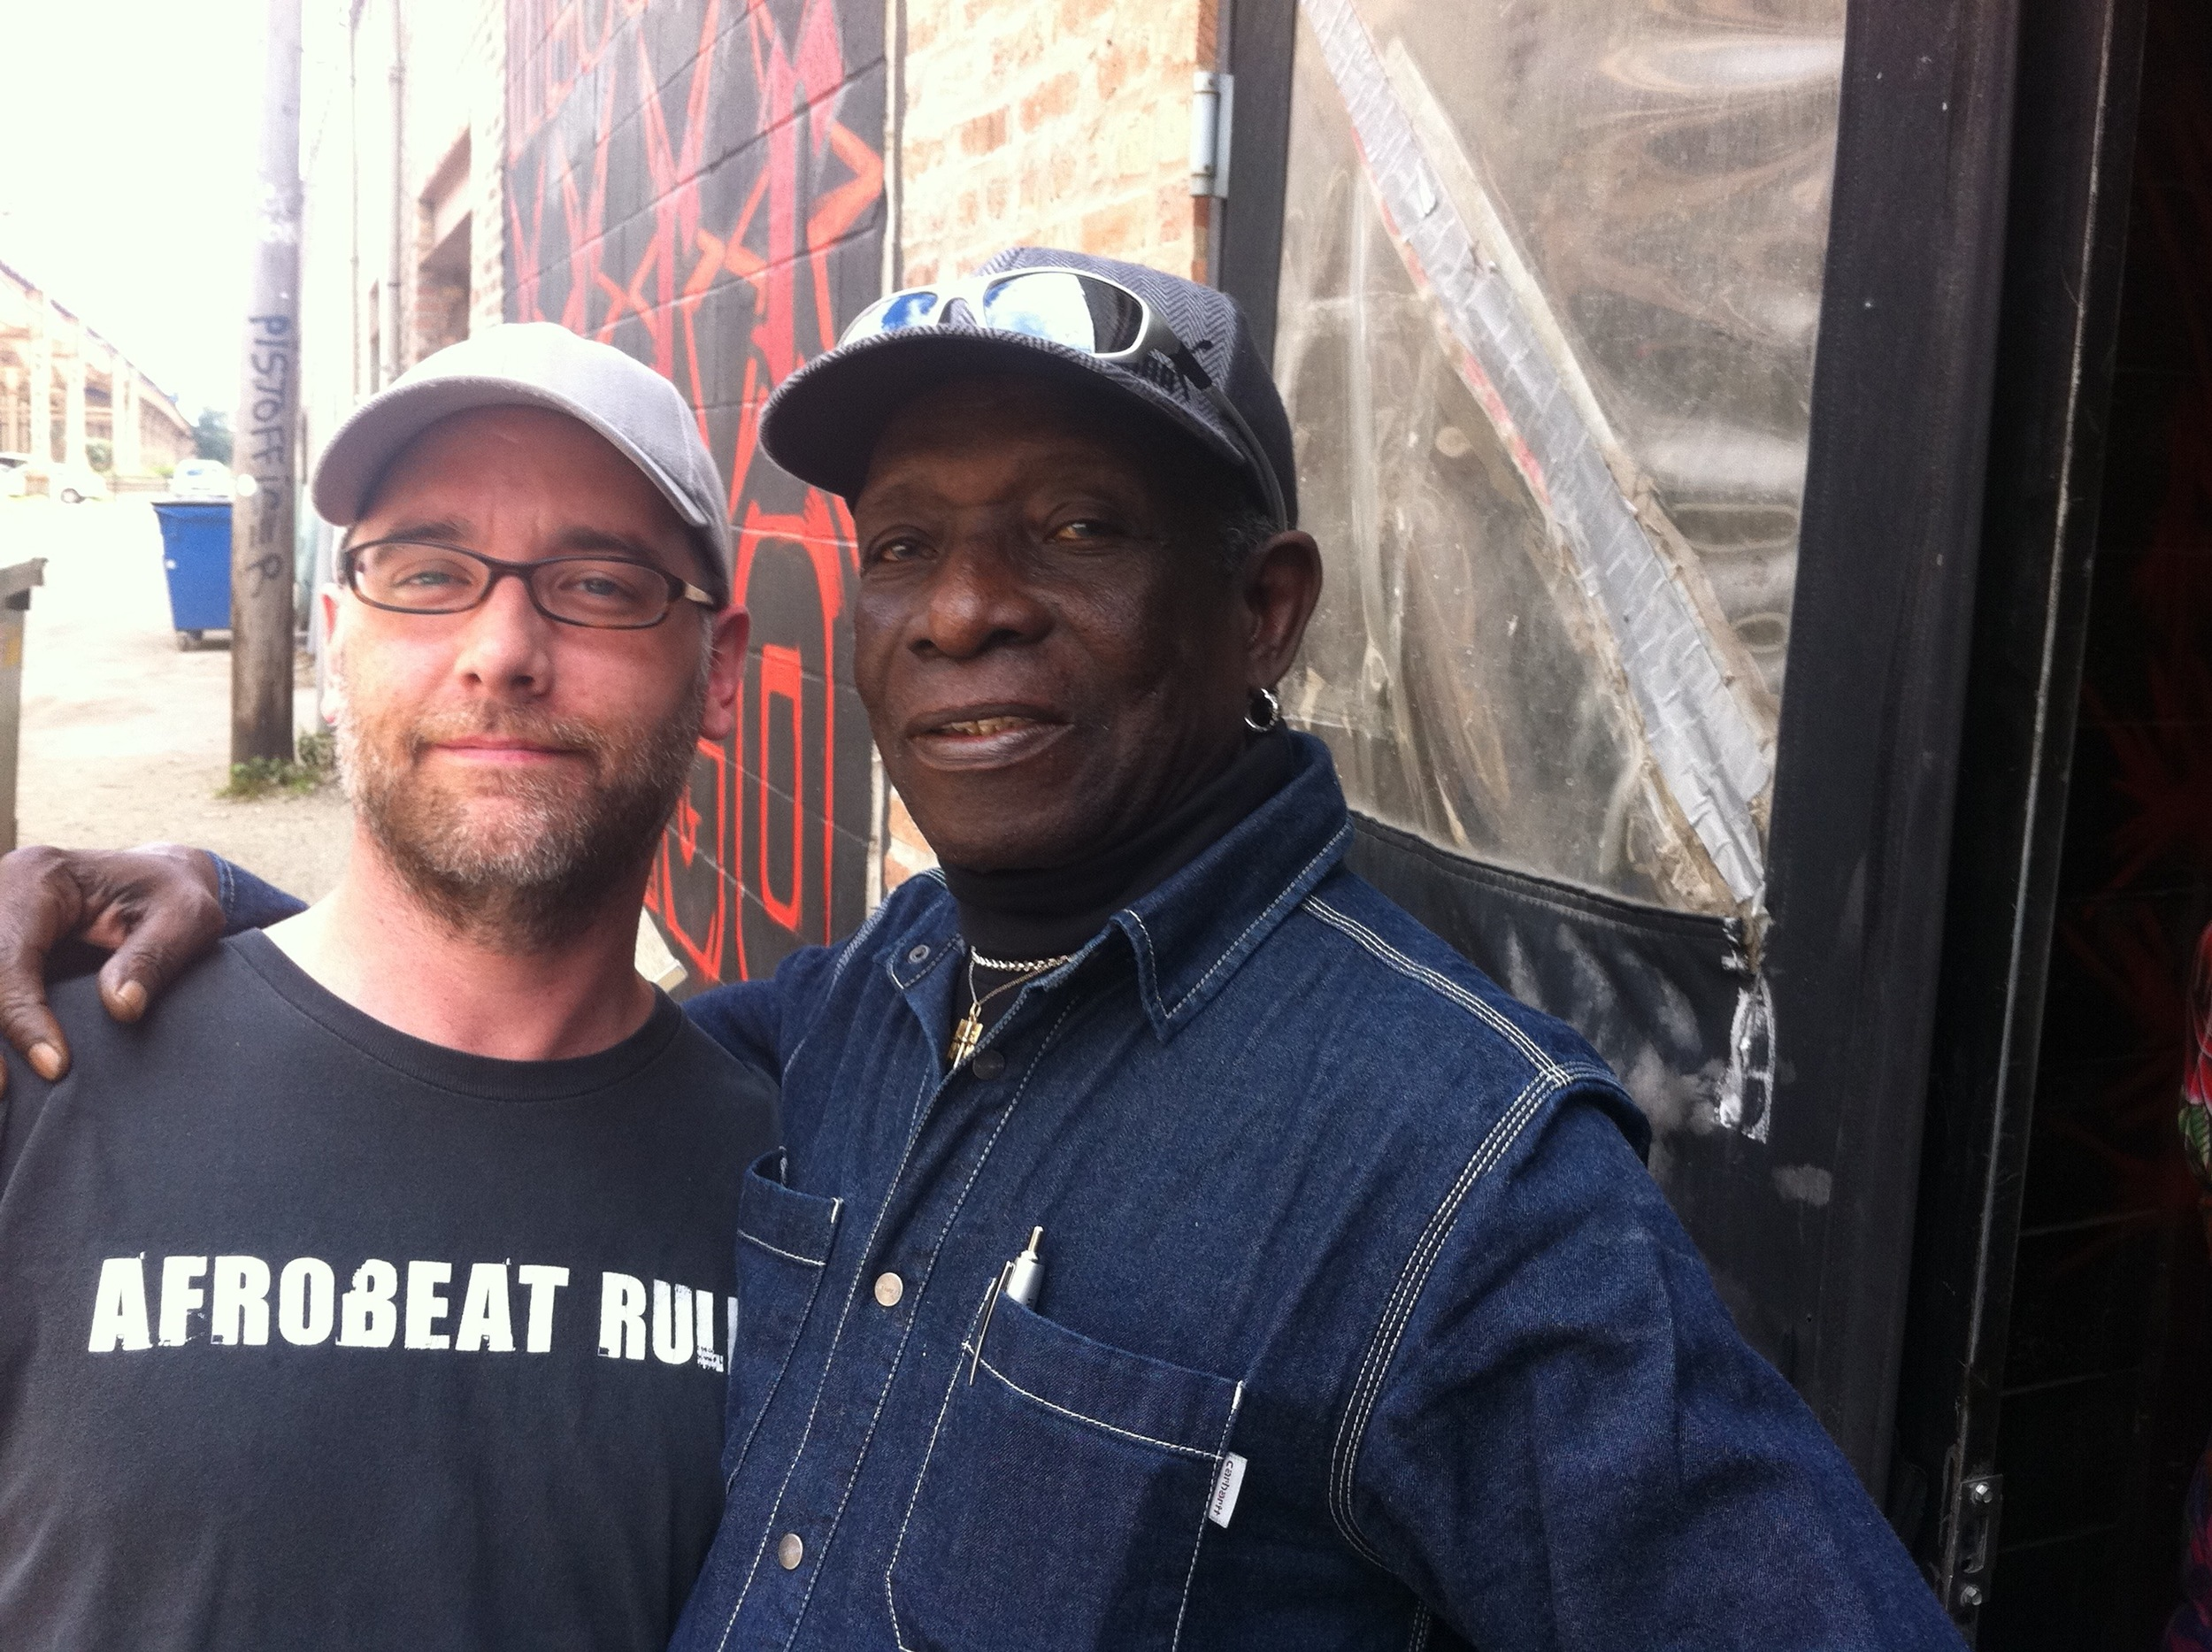 With Afrobeat founder and Fela Kuti drummer, Tony Allen